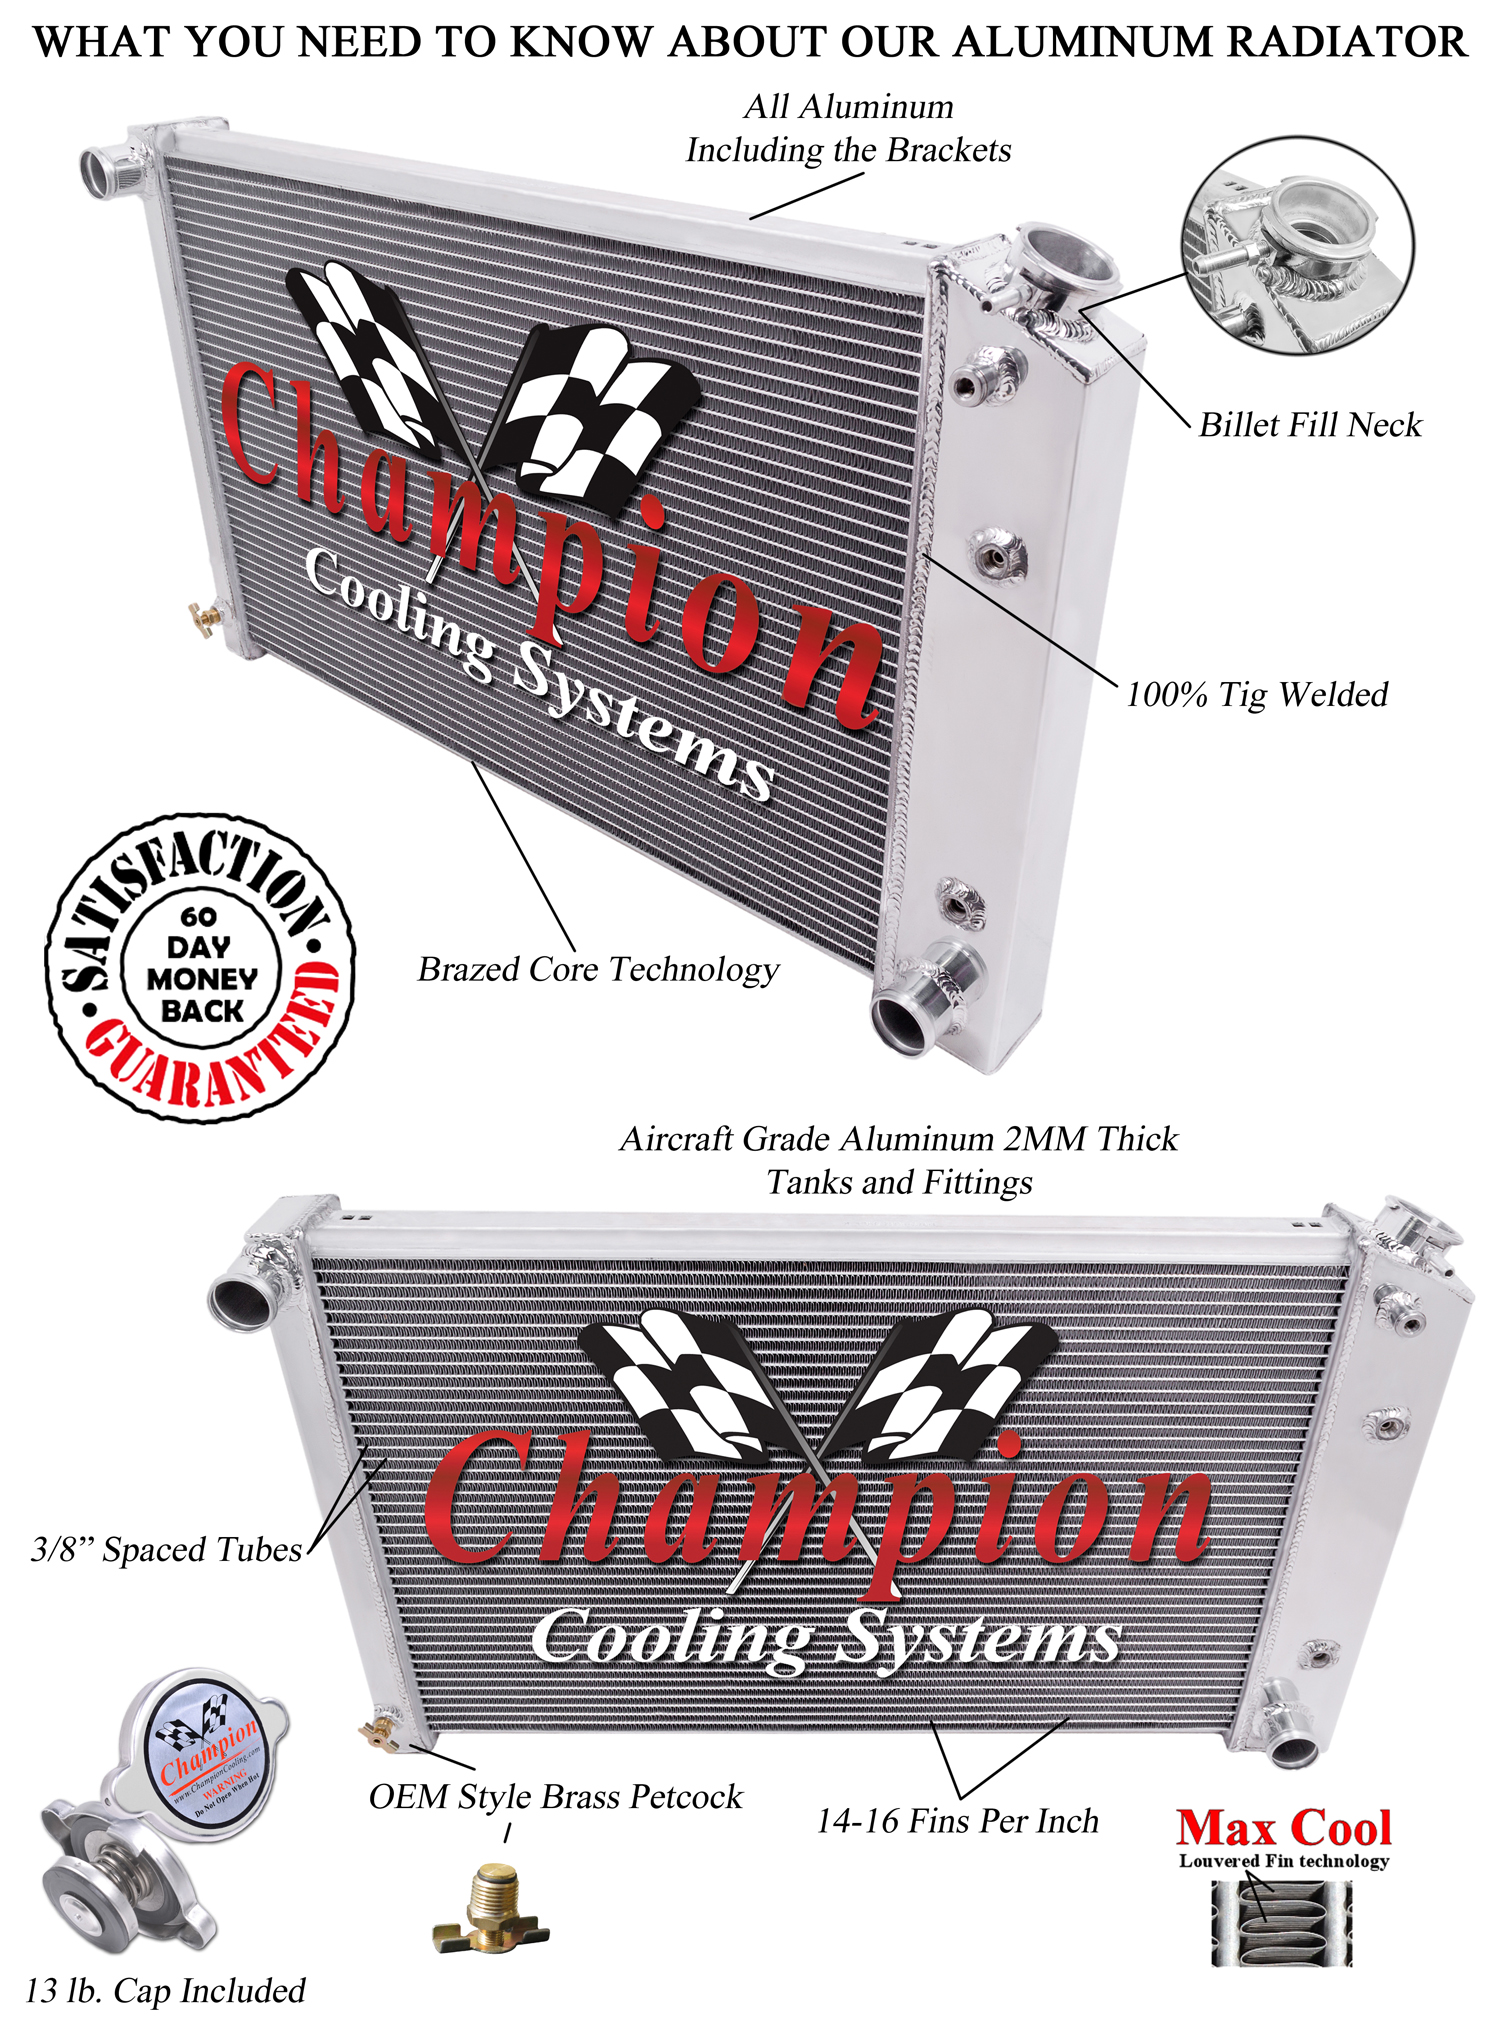 https://www.championcooling.com/photos/Photos%20White/Without%20Fans/162/162_white_diagram_champion.jpg